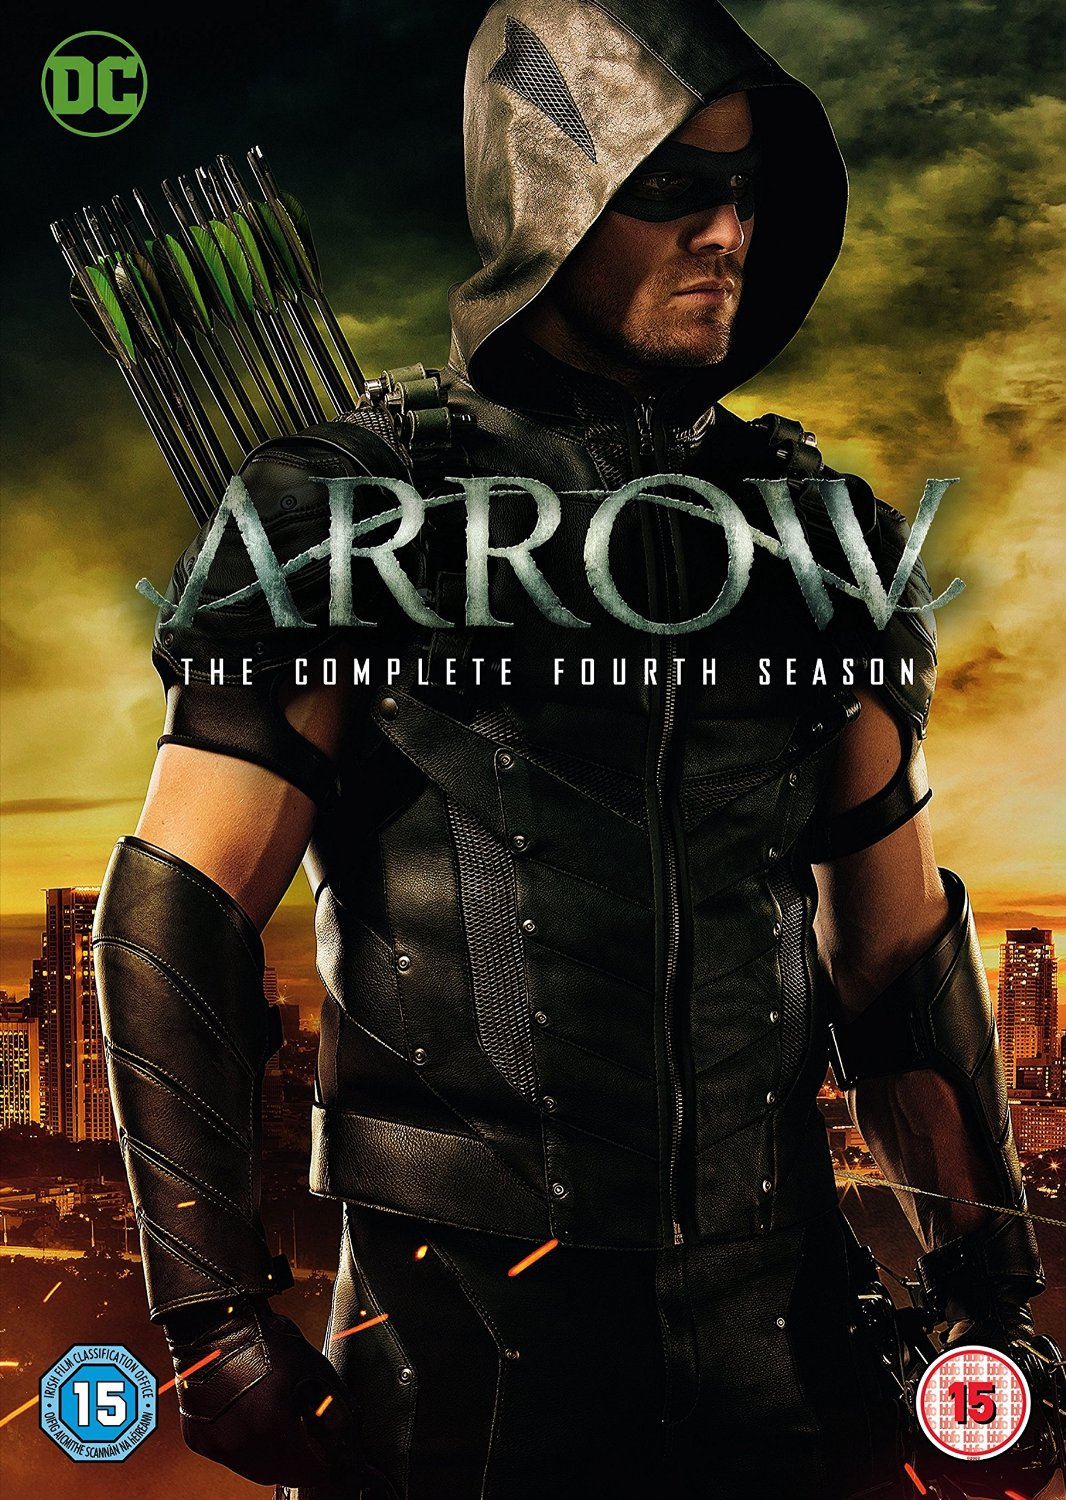 Arrow Season 4 Blu-ray review